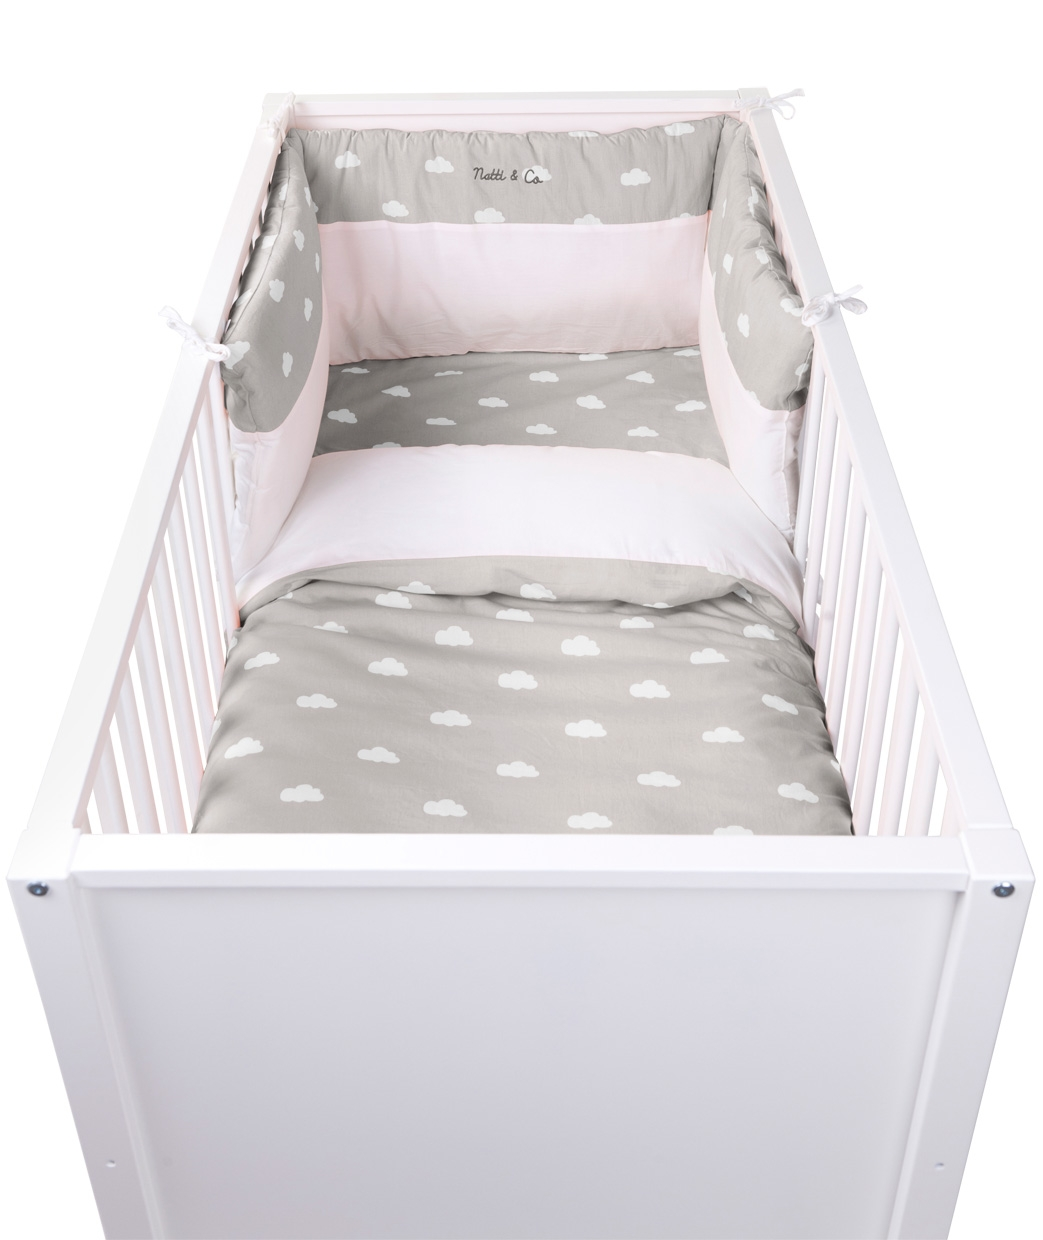 Tour de lit Snoozy nuages Natti & Co - CHILDWOOD